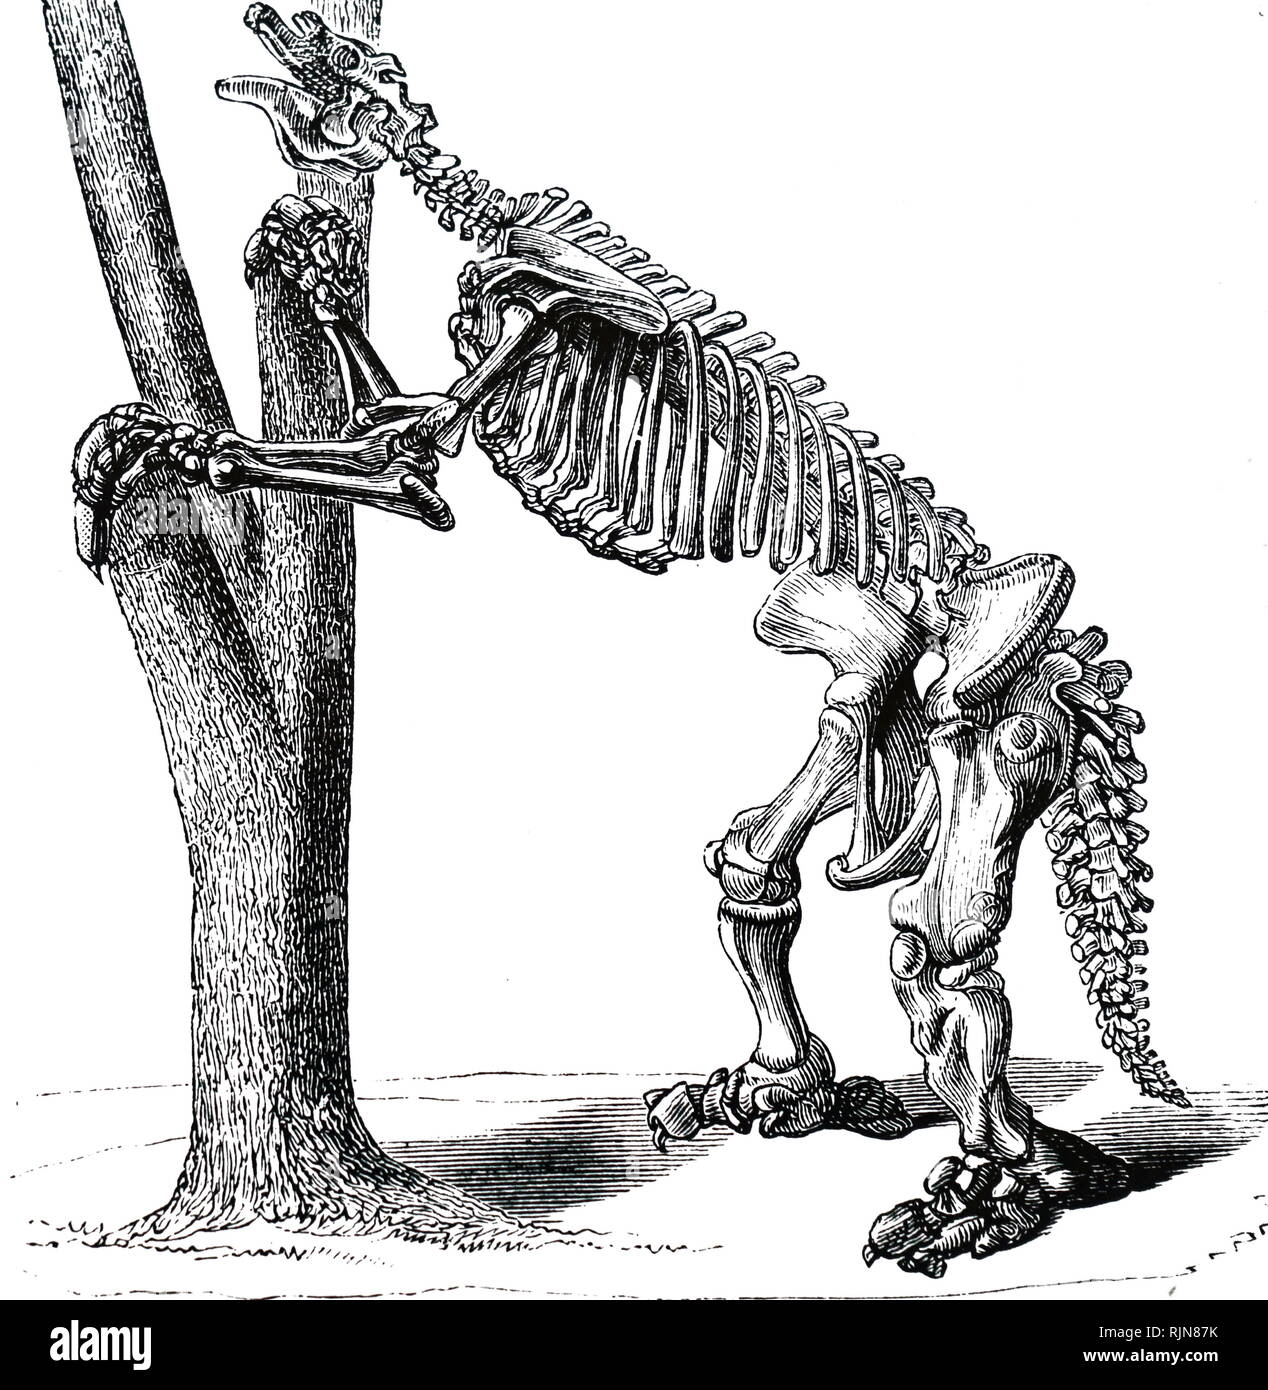 An engraving depicting the skeleton of a Megatherium (giant ground sloth) mainly South American mammals about the size of an elephant - Upper Pliocene and Pleistocene Periods. Dated 19th century - Stock Image